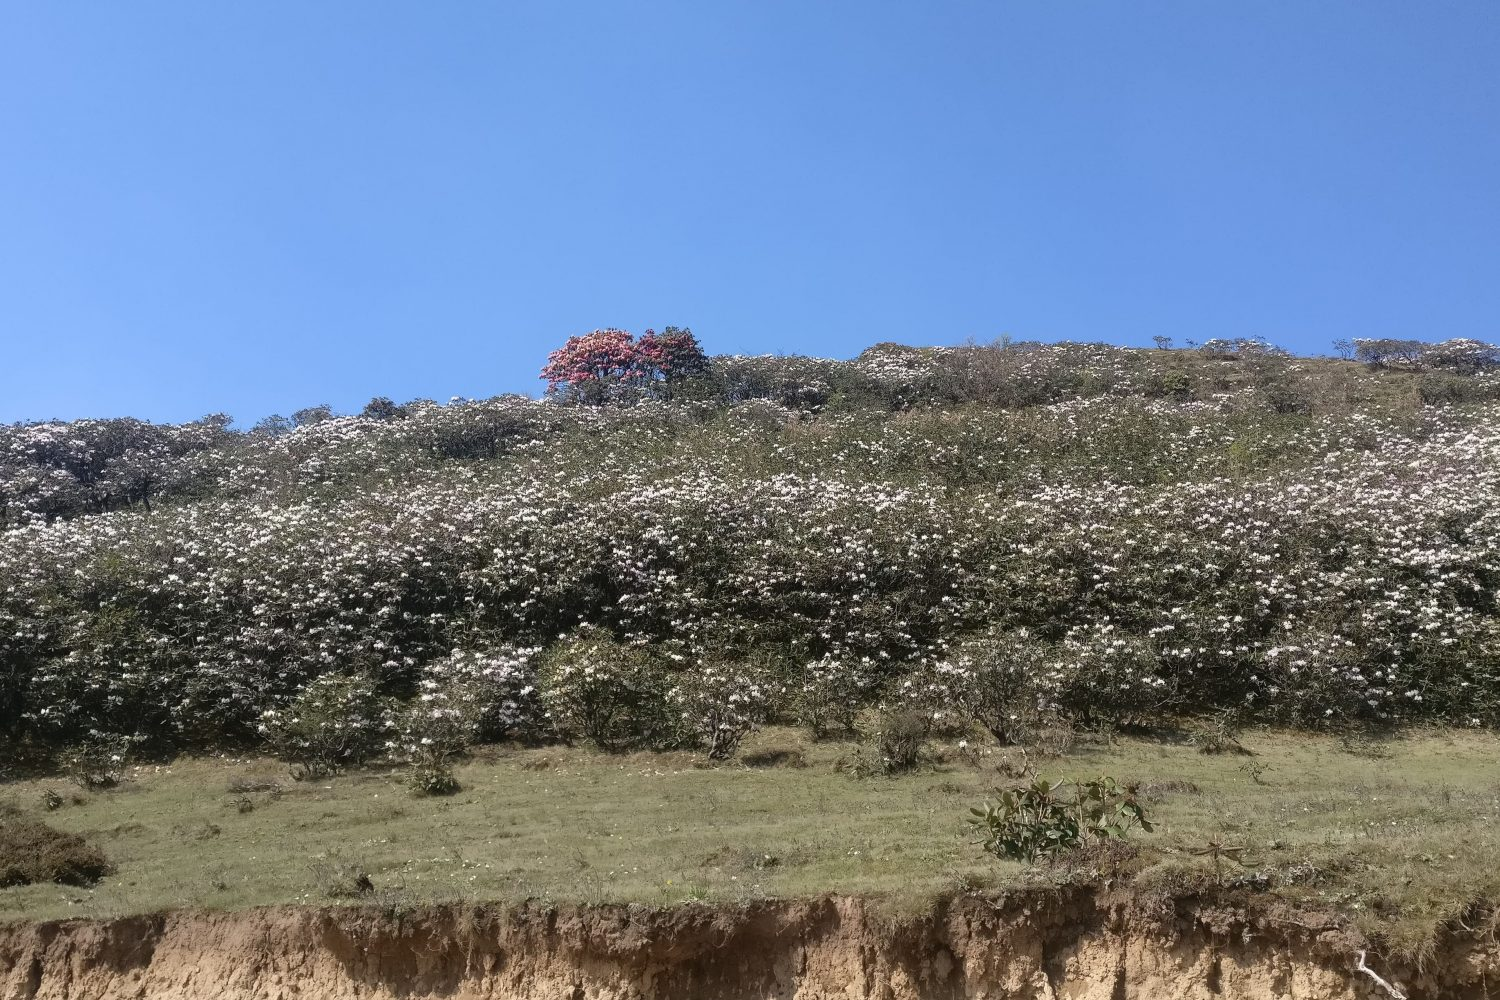 Rhododendrons enroute to Bhulbhule on the Pikey Peak Trek